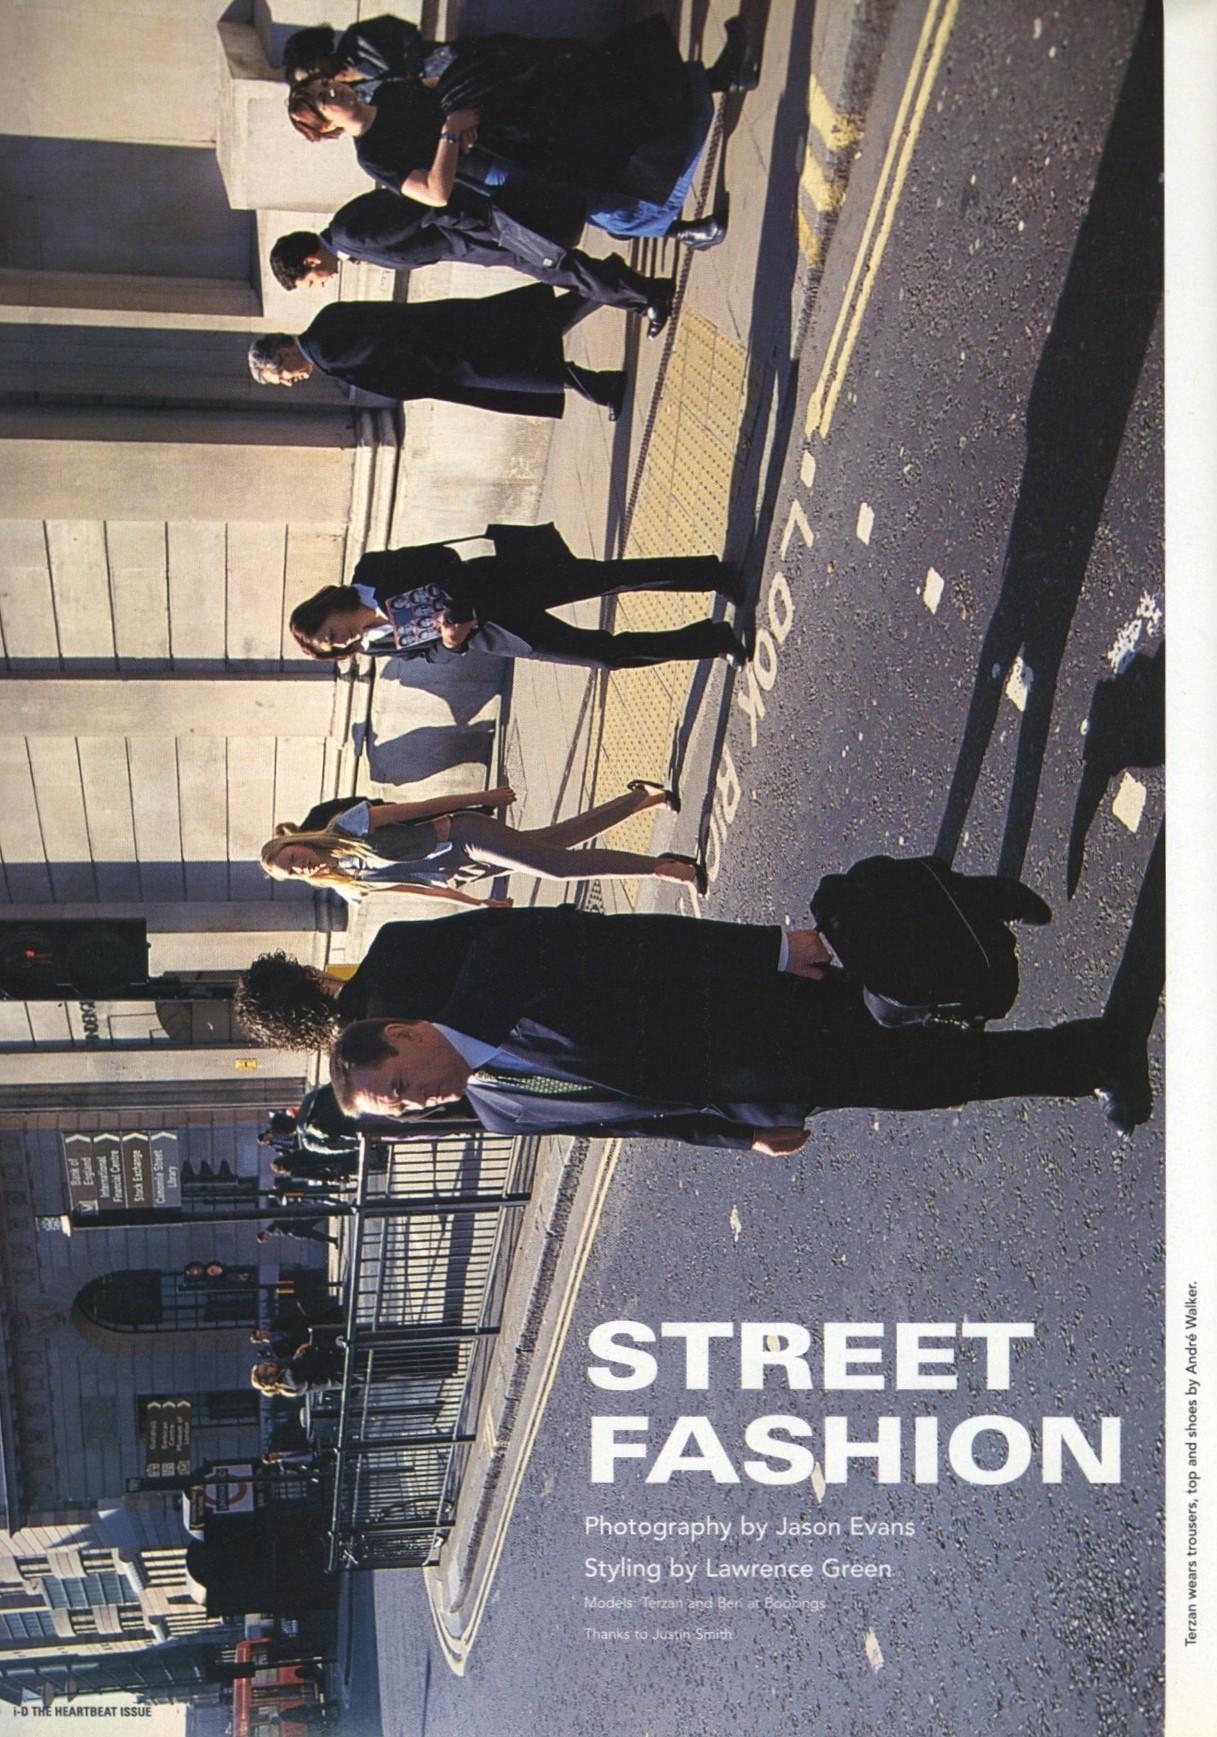 street fashion photography jason evans id magazine no 199 the heartbeat issue july 2000 1